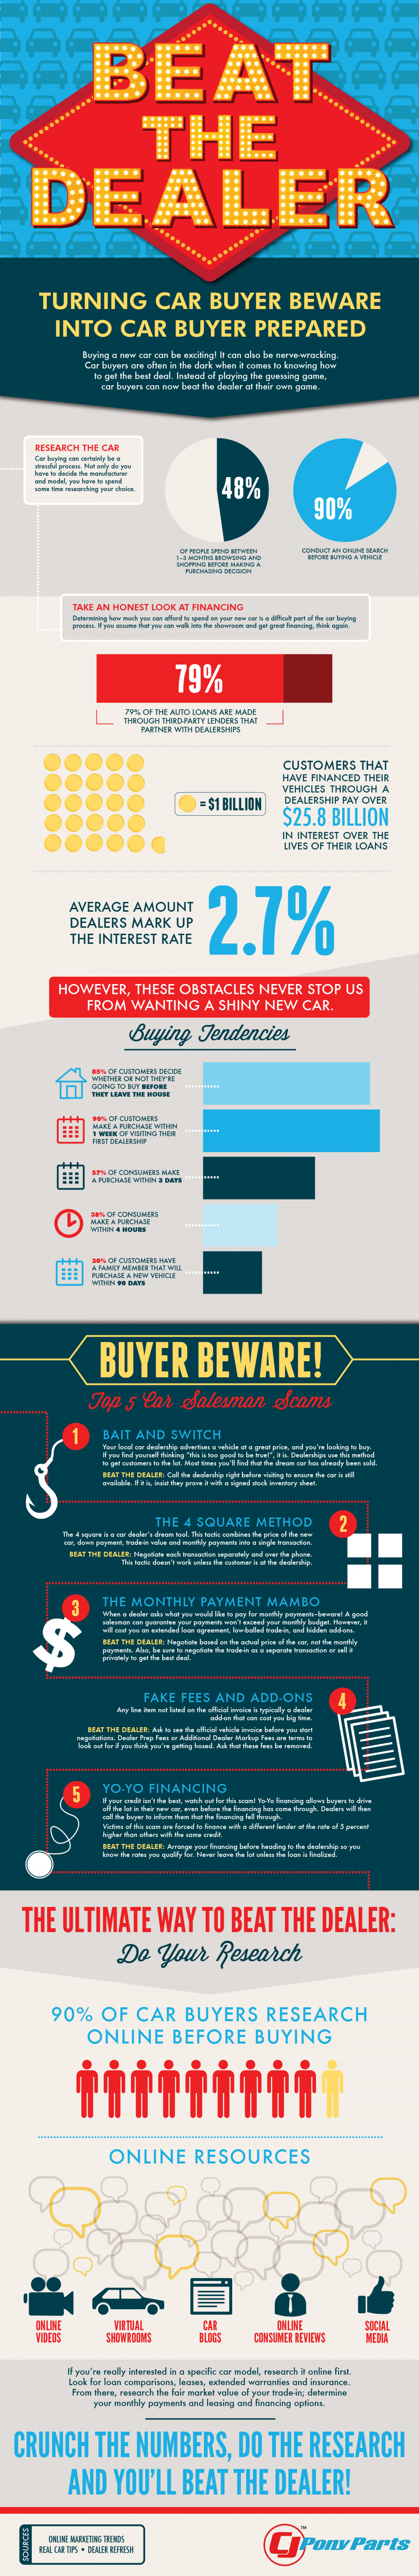 Beat the Dealer Infographic